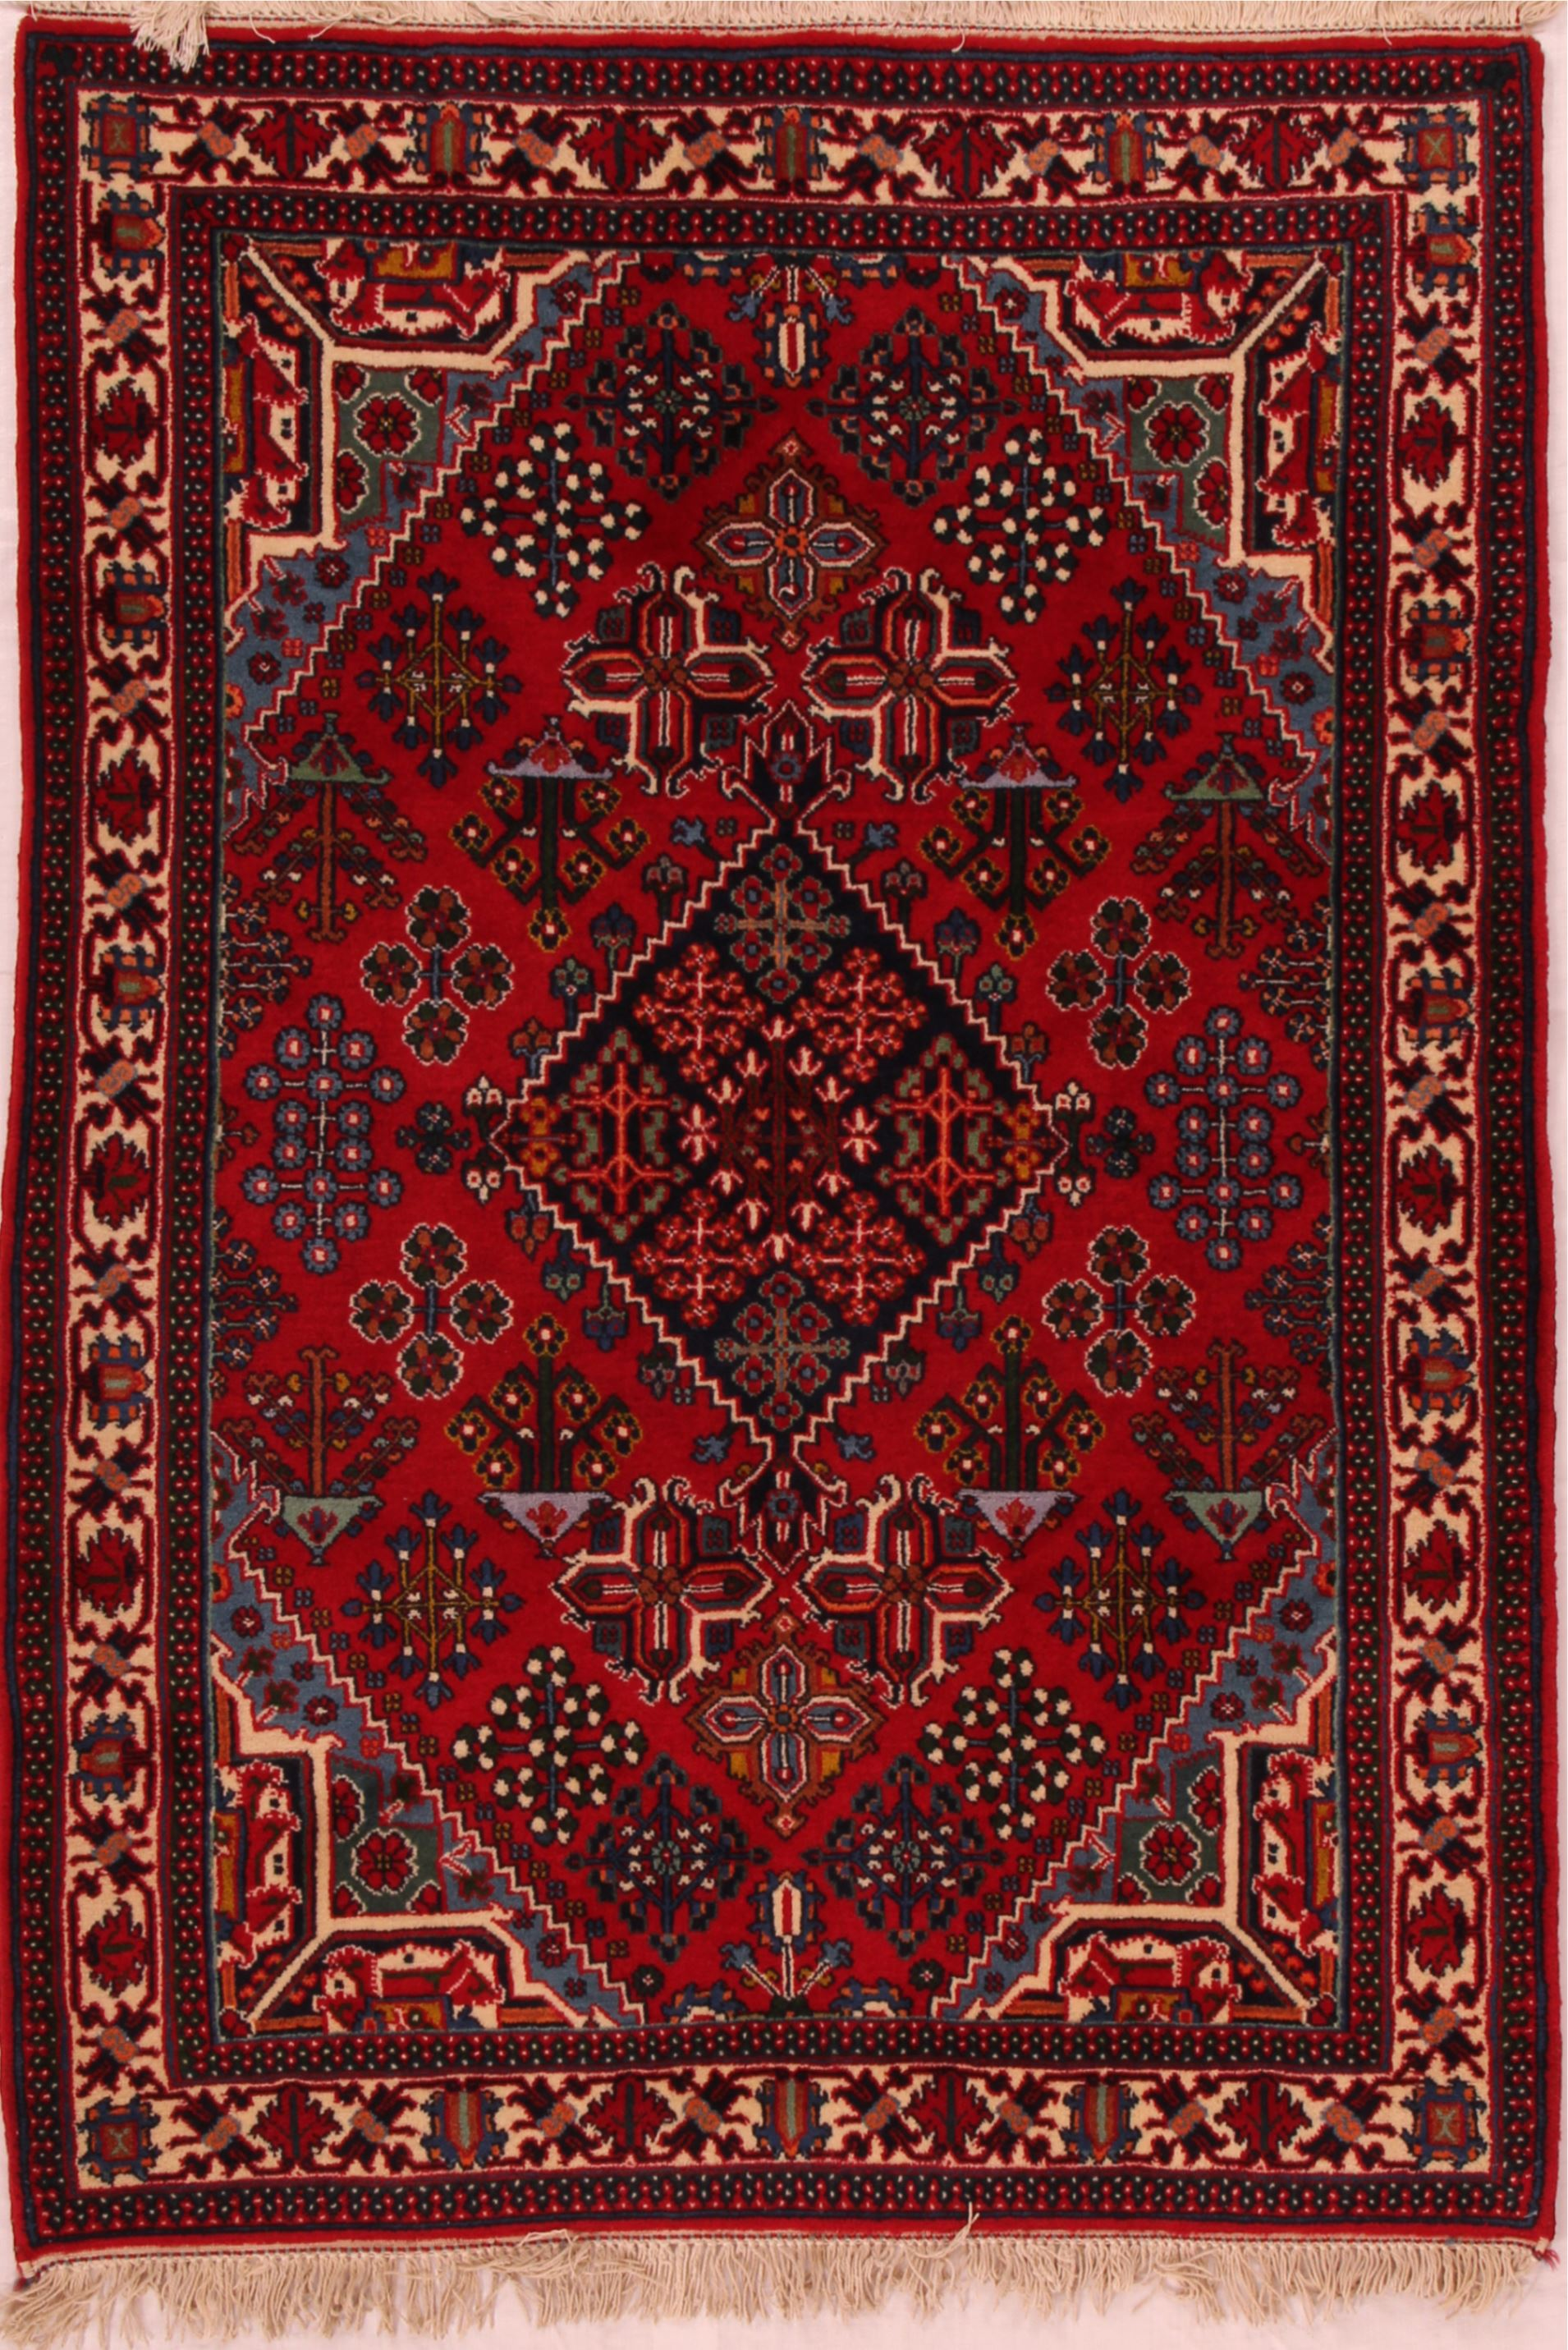 Persian area rugs persian joshaghan red rectangle 3x5 ft wool carpet 16458 HAVIDUY